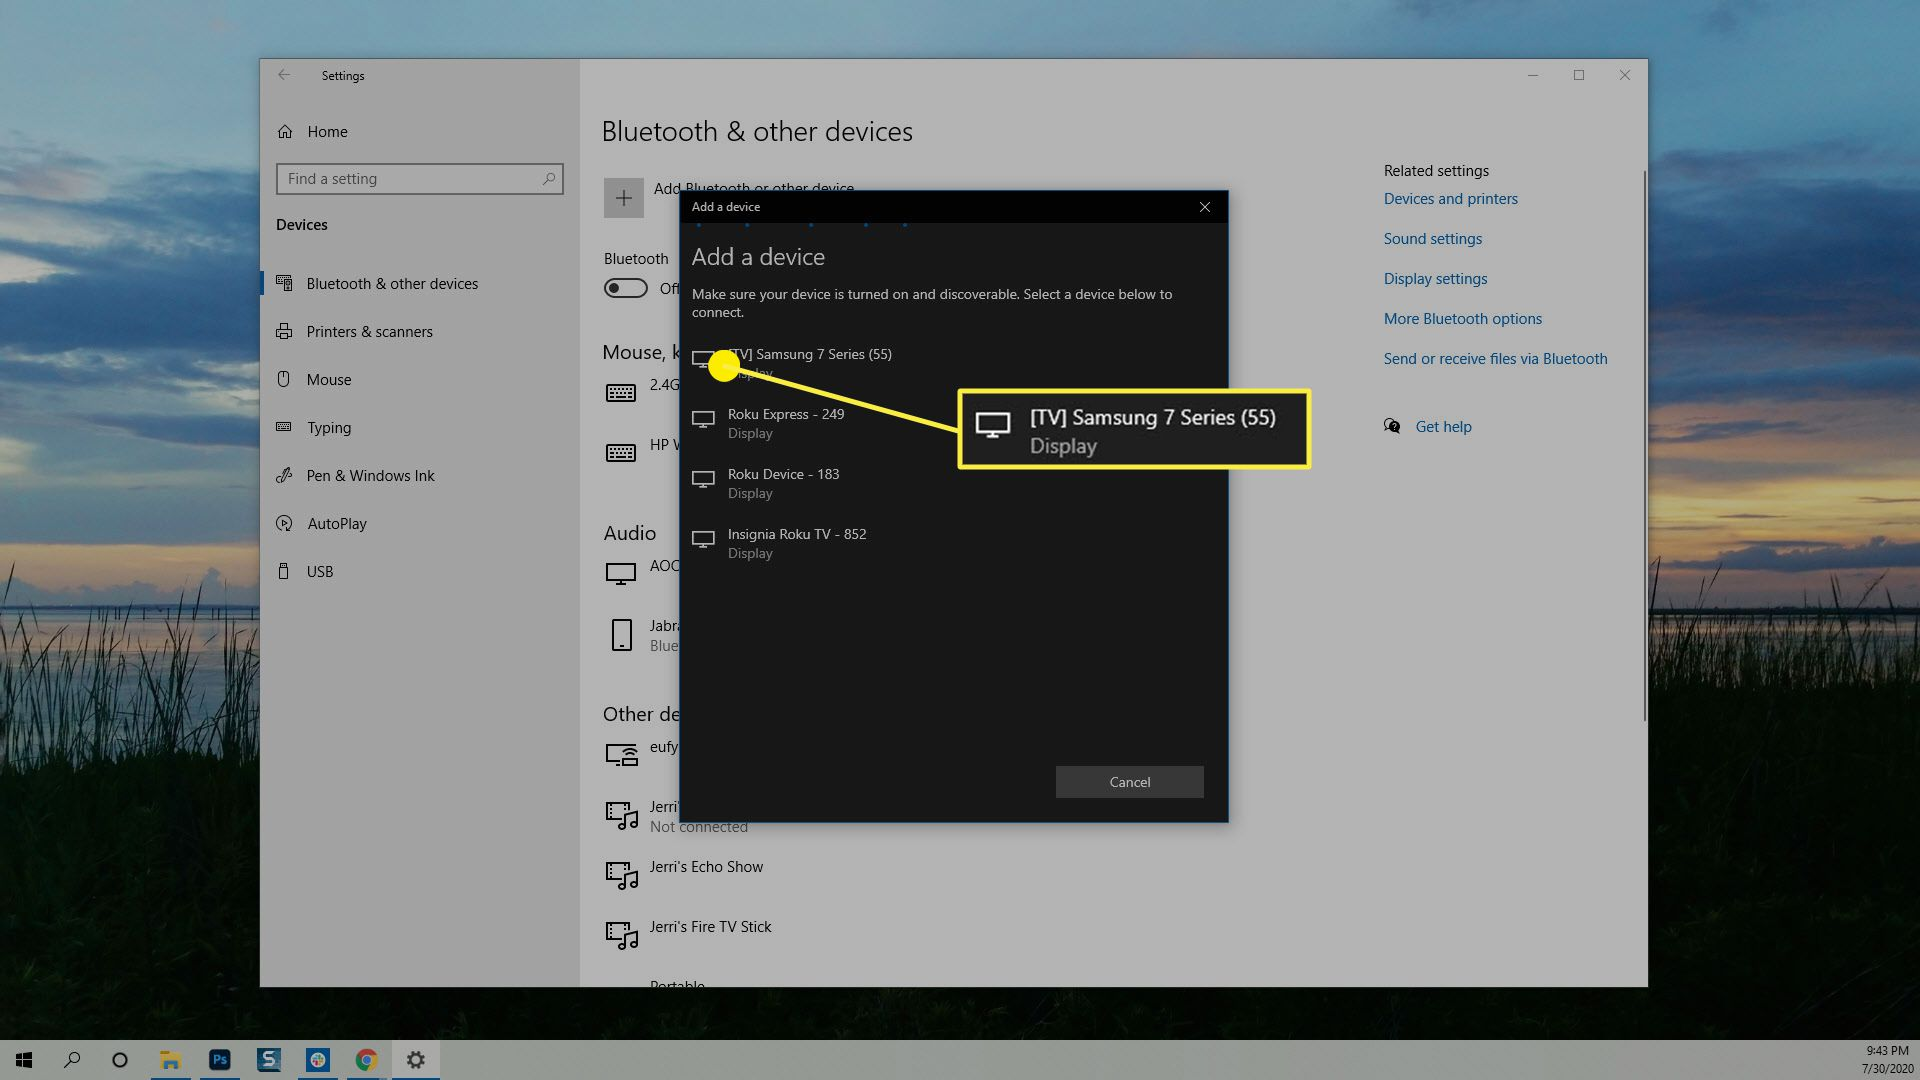 The list of available devices in the Add a device dialog box in Windows.